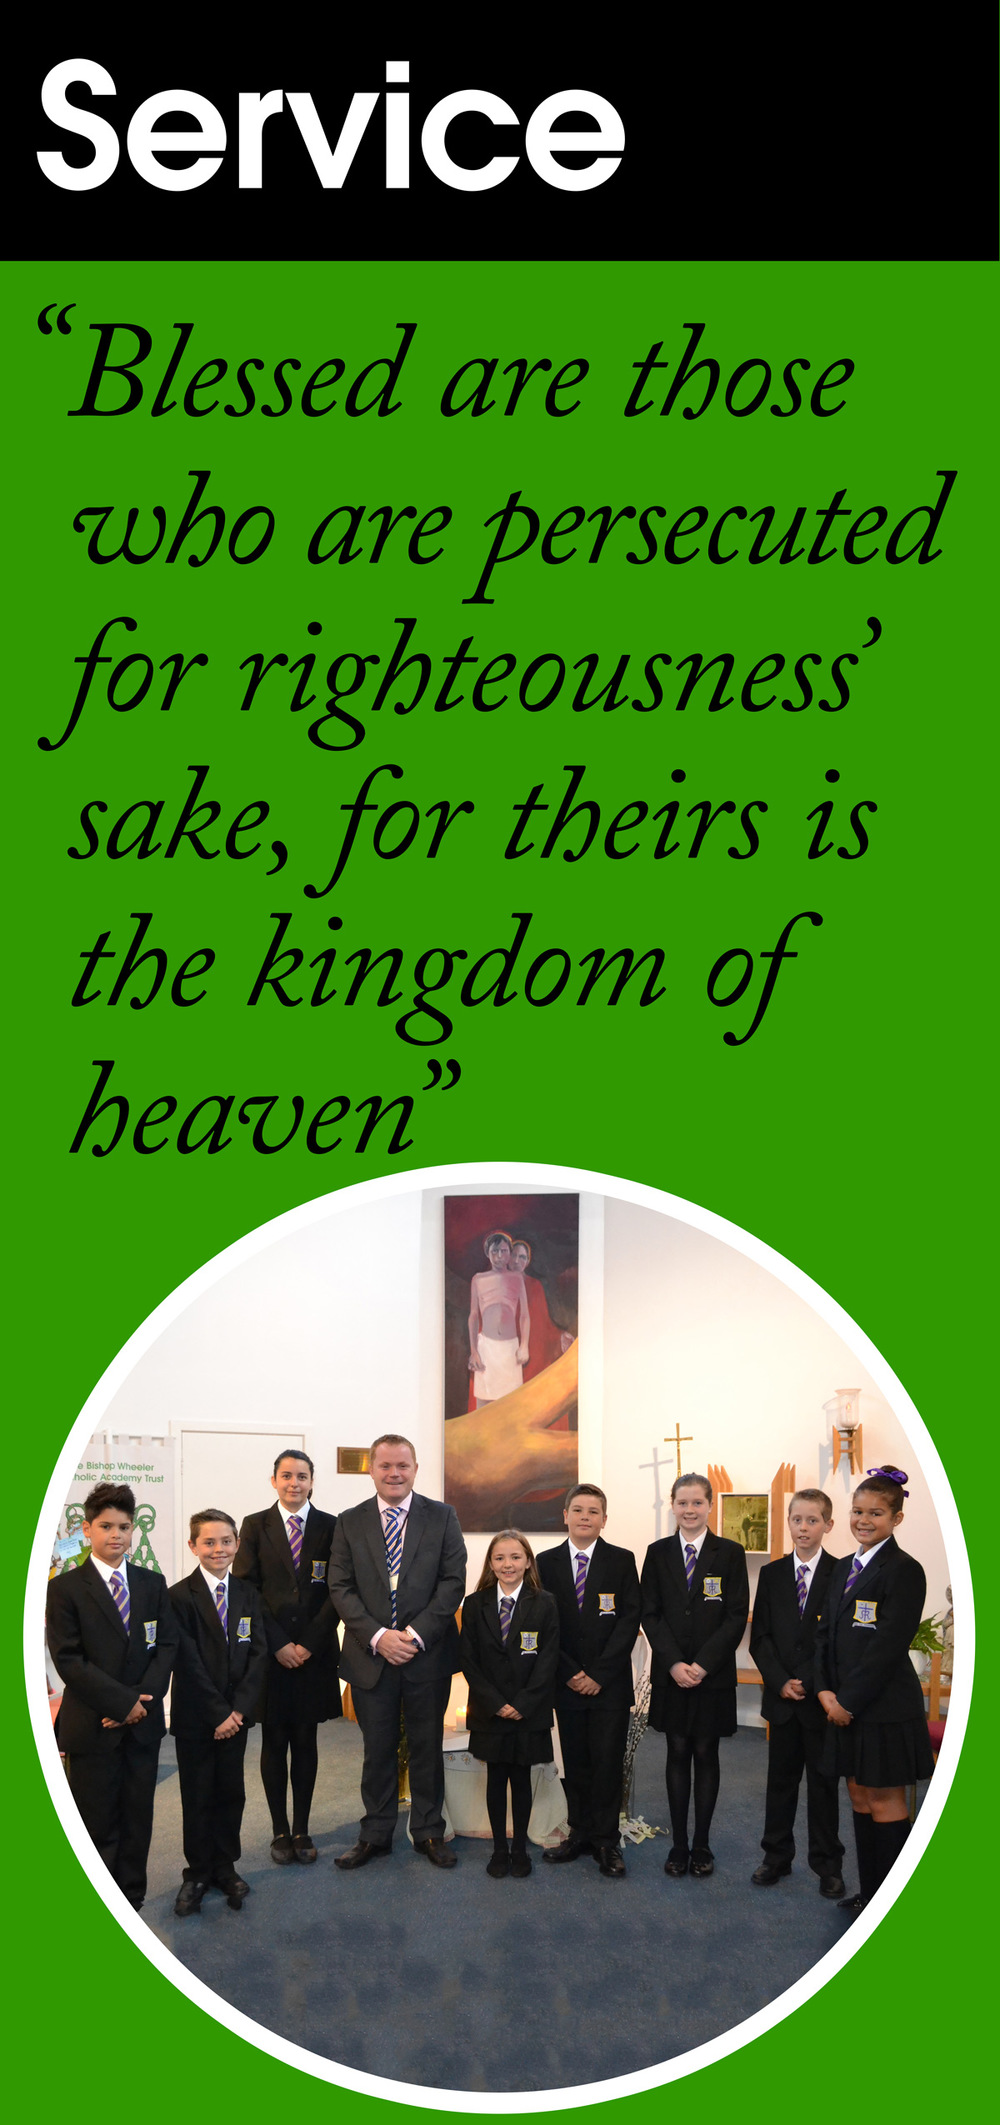 "Service: ""Blessed are those who are persecuted for righteousness' sake, for theirs is the kingdom of heaven"""